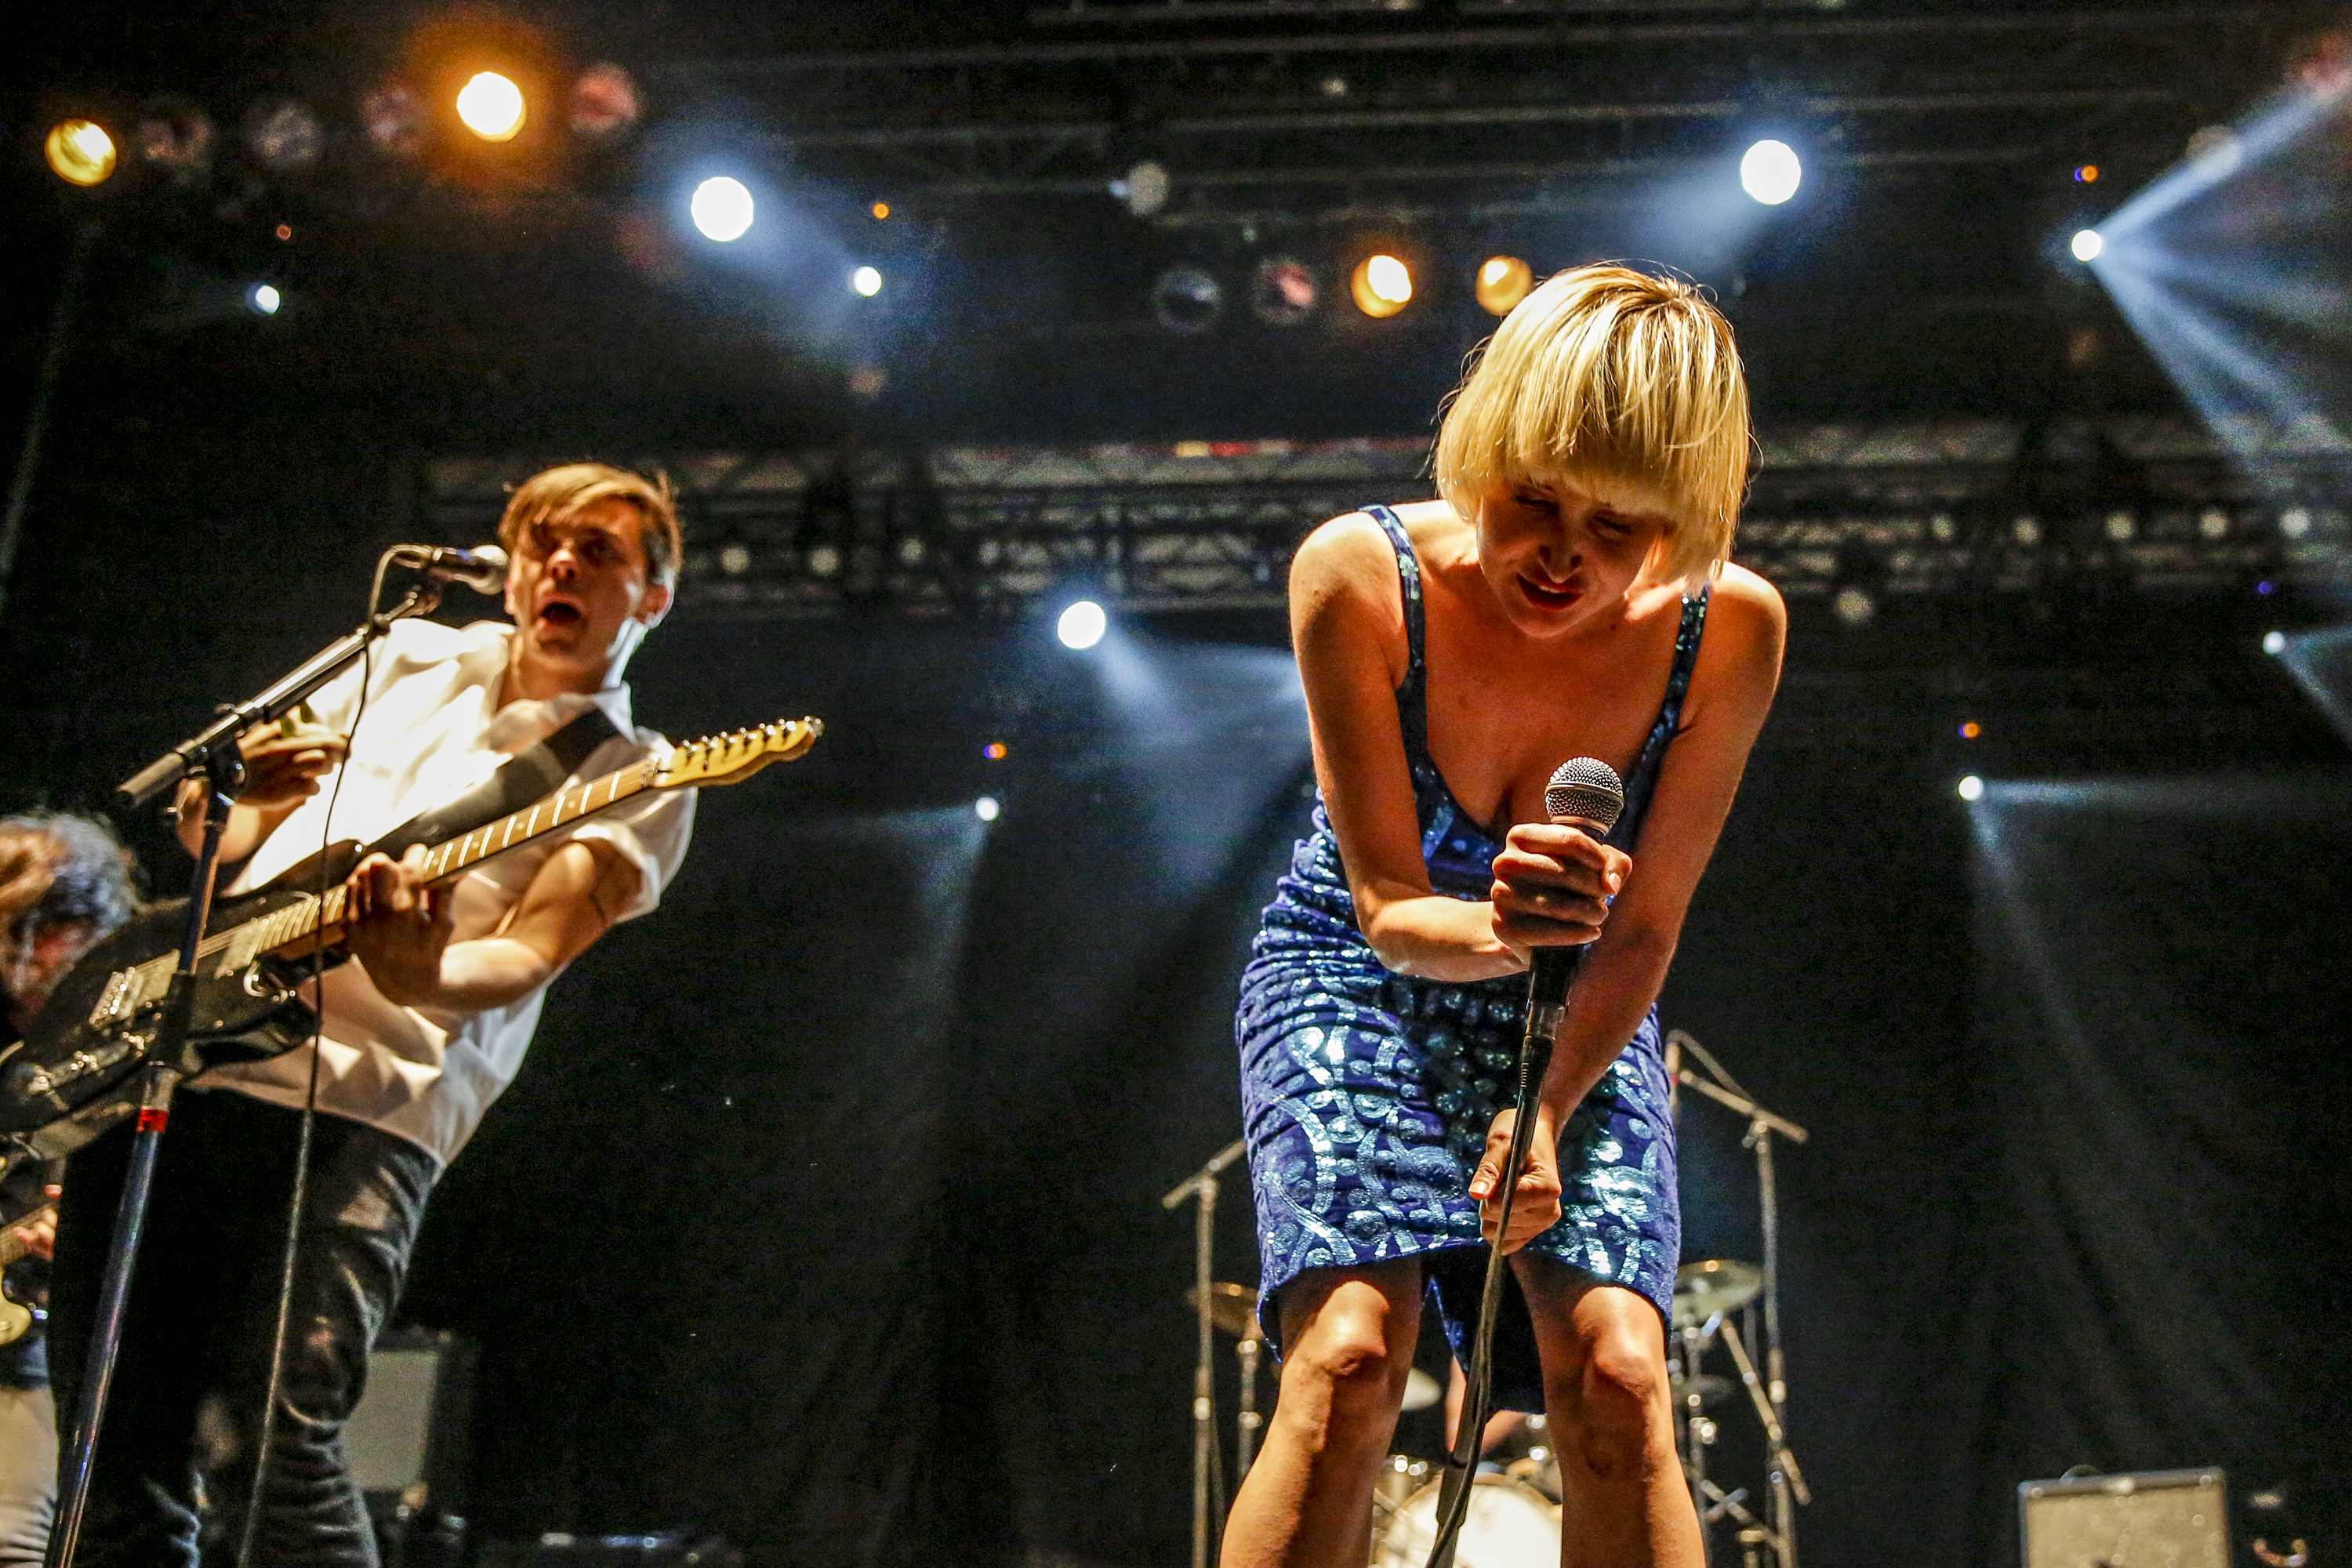 July Talk at the RBC Royal Bank Bluesfest 2014